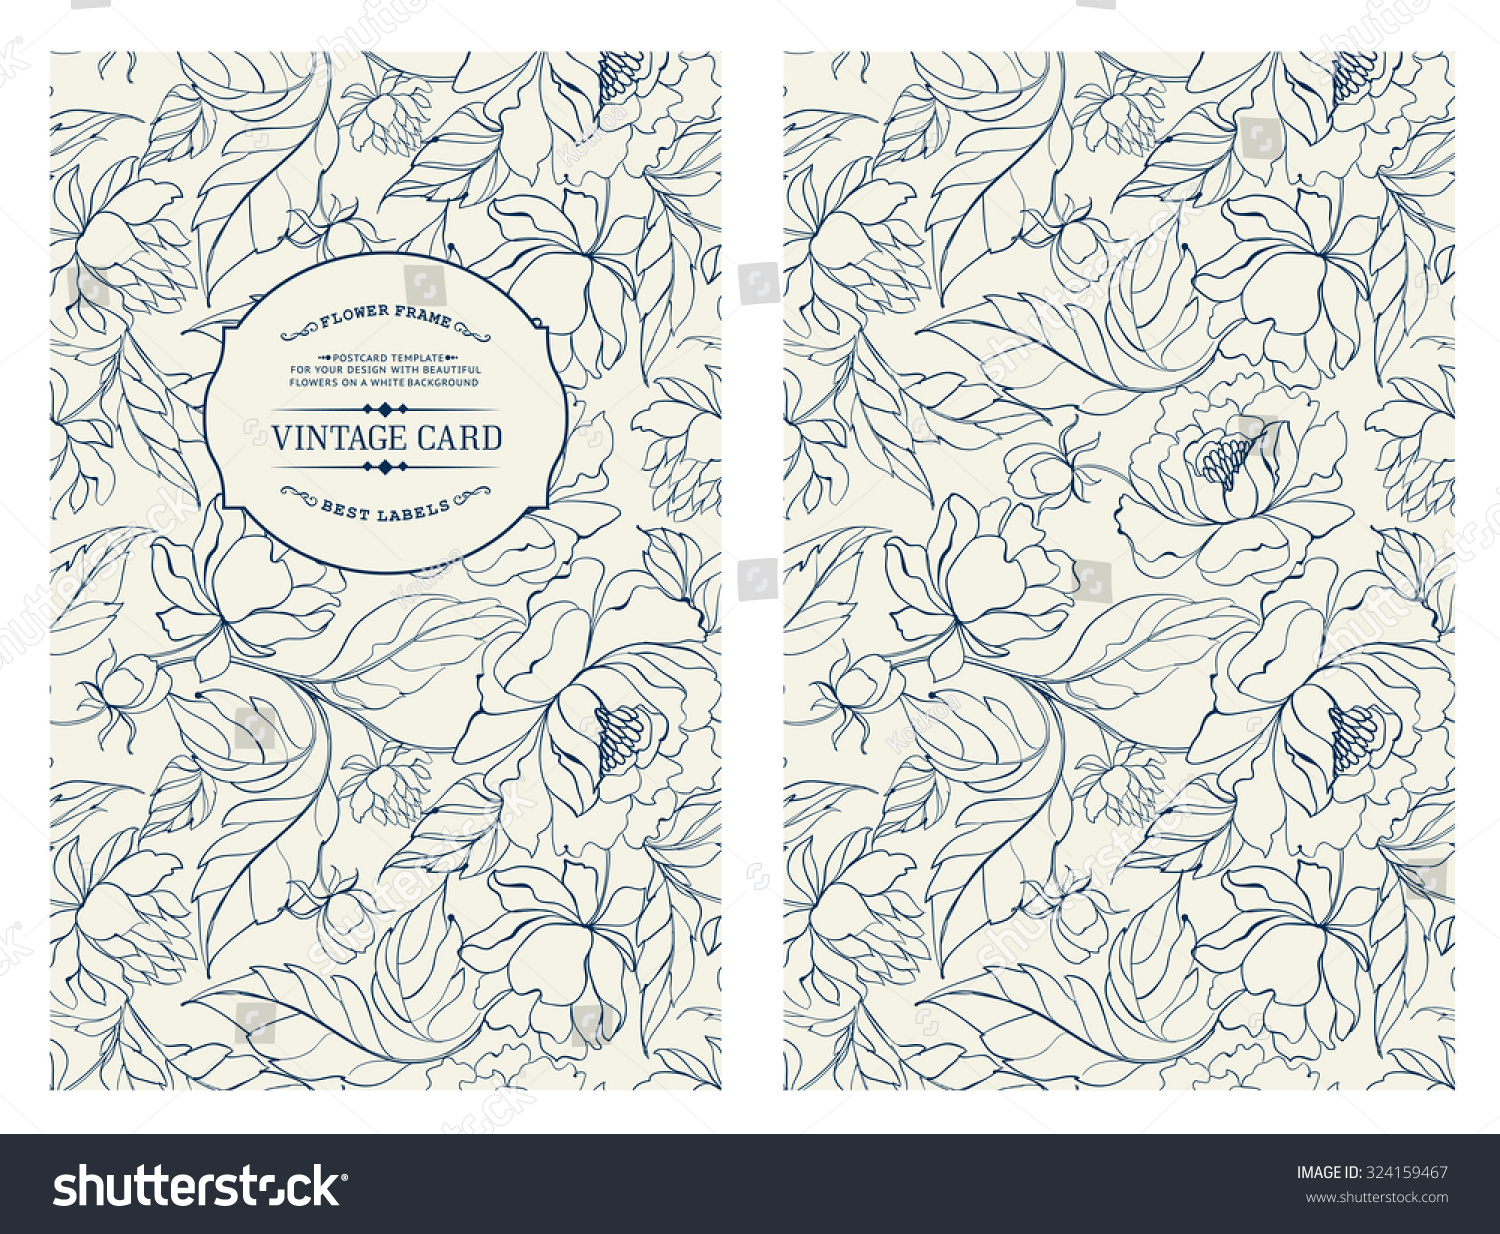 Poetry Book Cover Vector : Vintage card flowers on background book vectores en stock